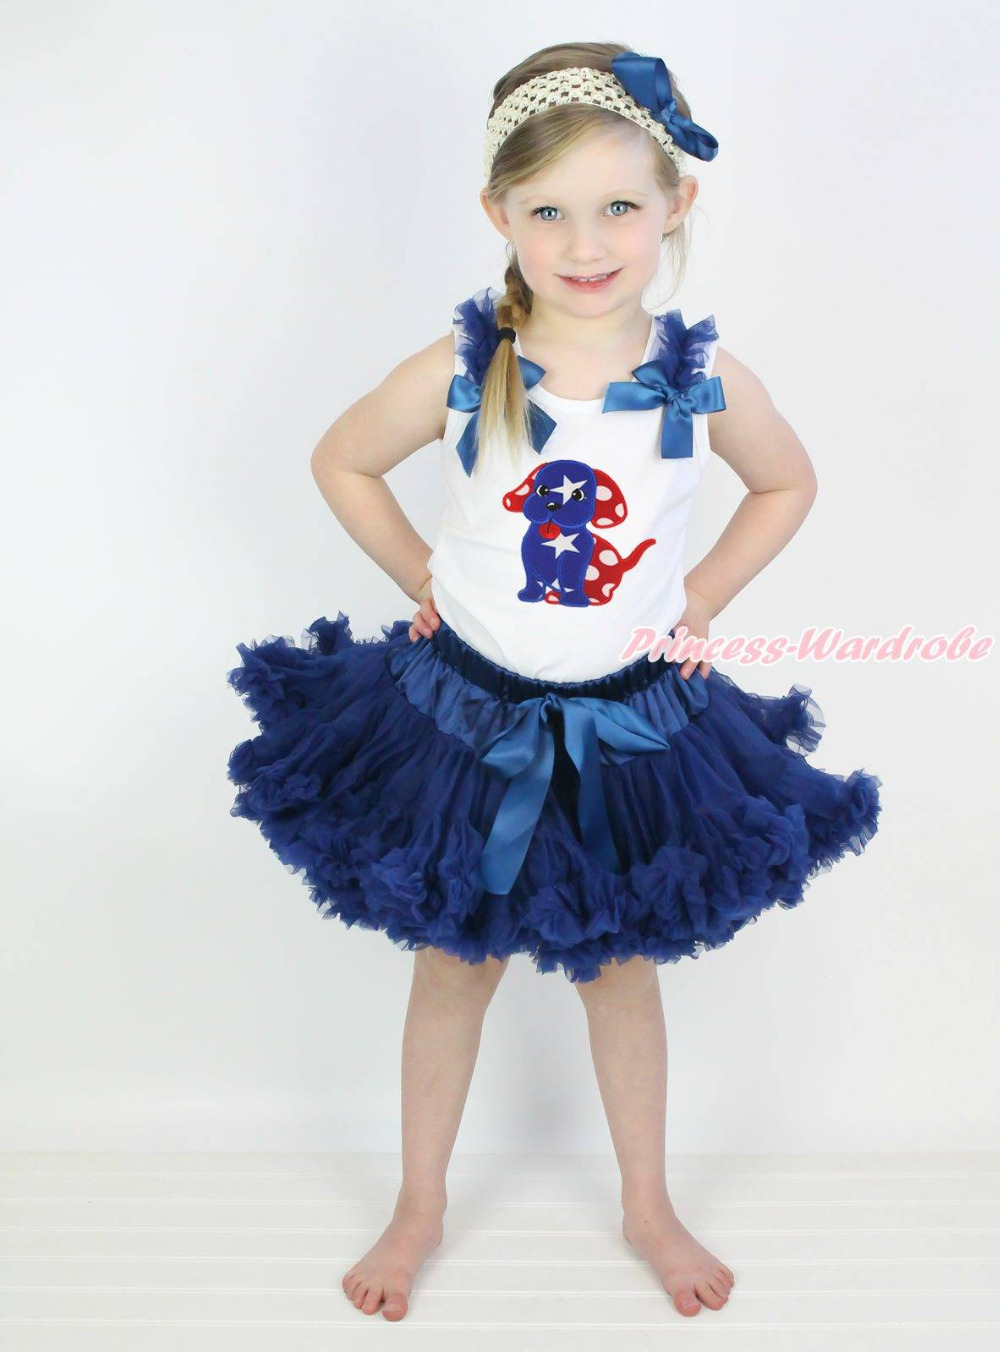 4th July Star Minnie Dog Puppy White Top Navy Blue Skirt Girls Cloth Outfit 1-8Y  MAPSA0787